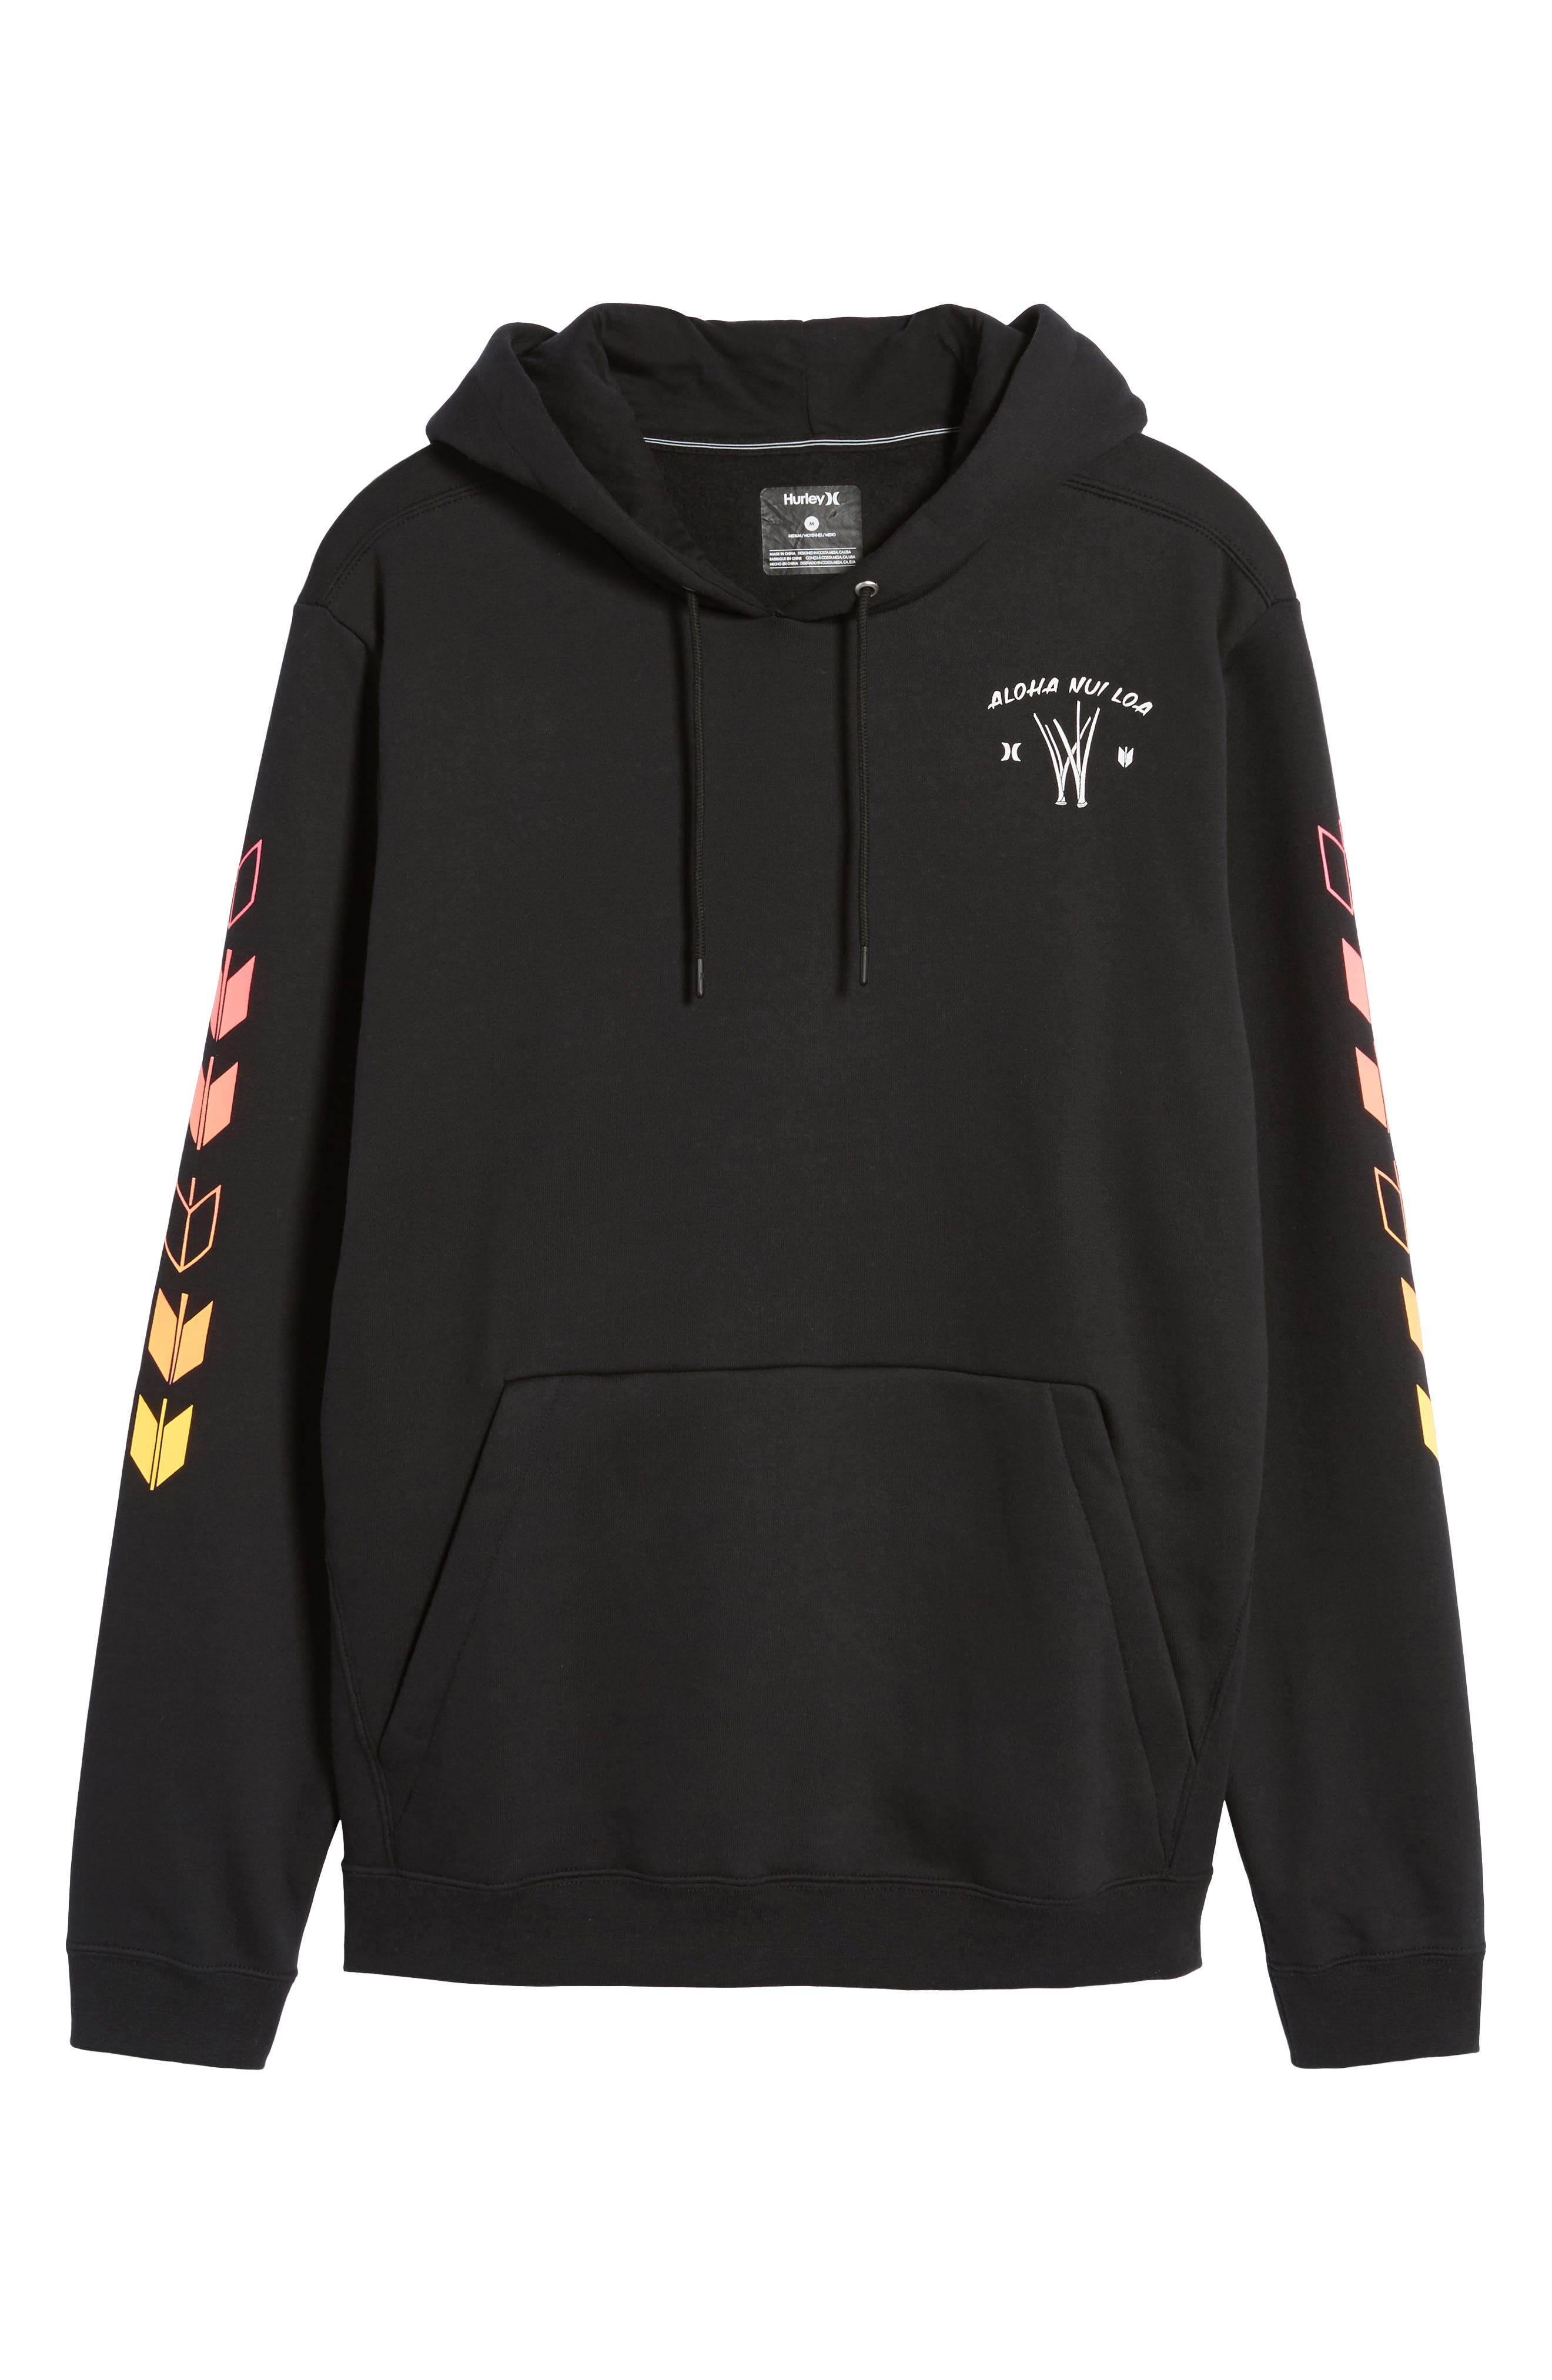 Surf Check Sig Zane Pullover Hoodie,                             Alternate thumbnail 6, color,